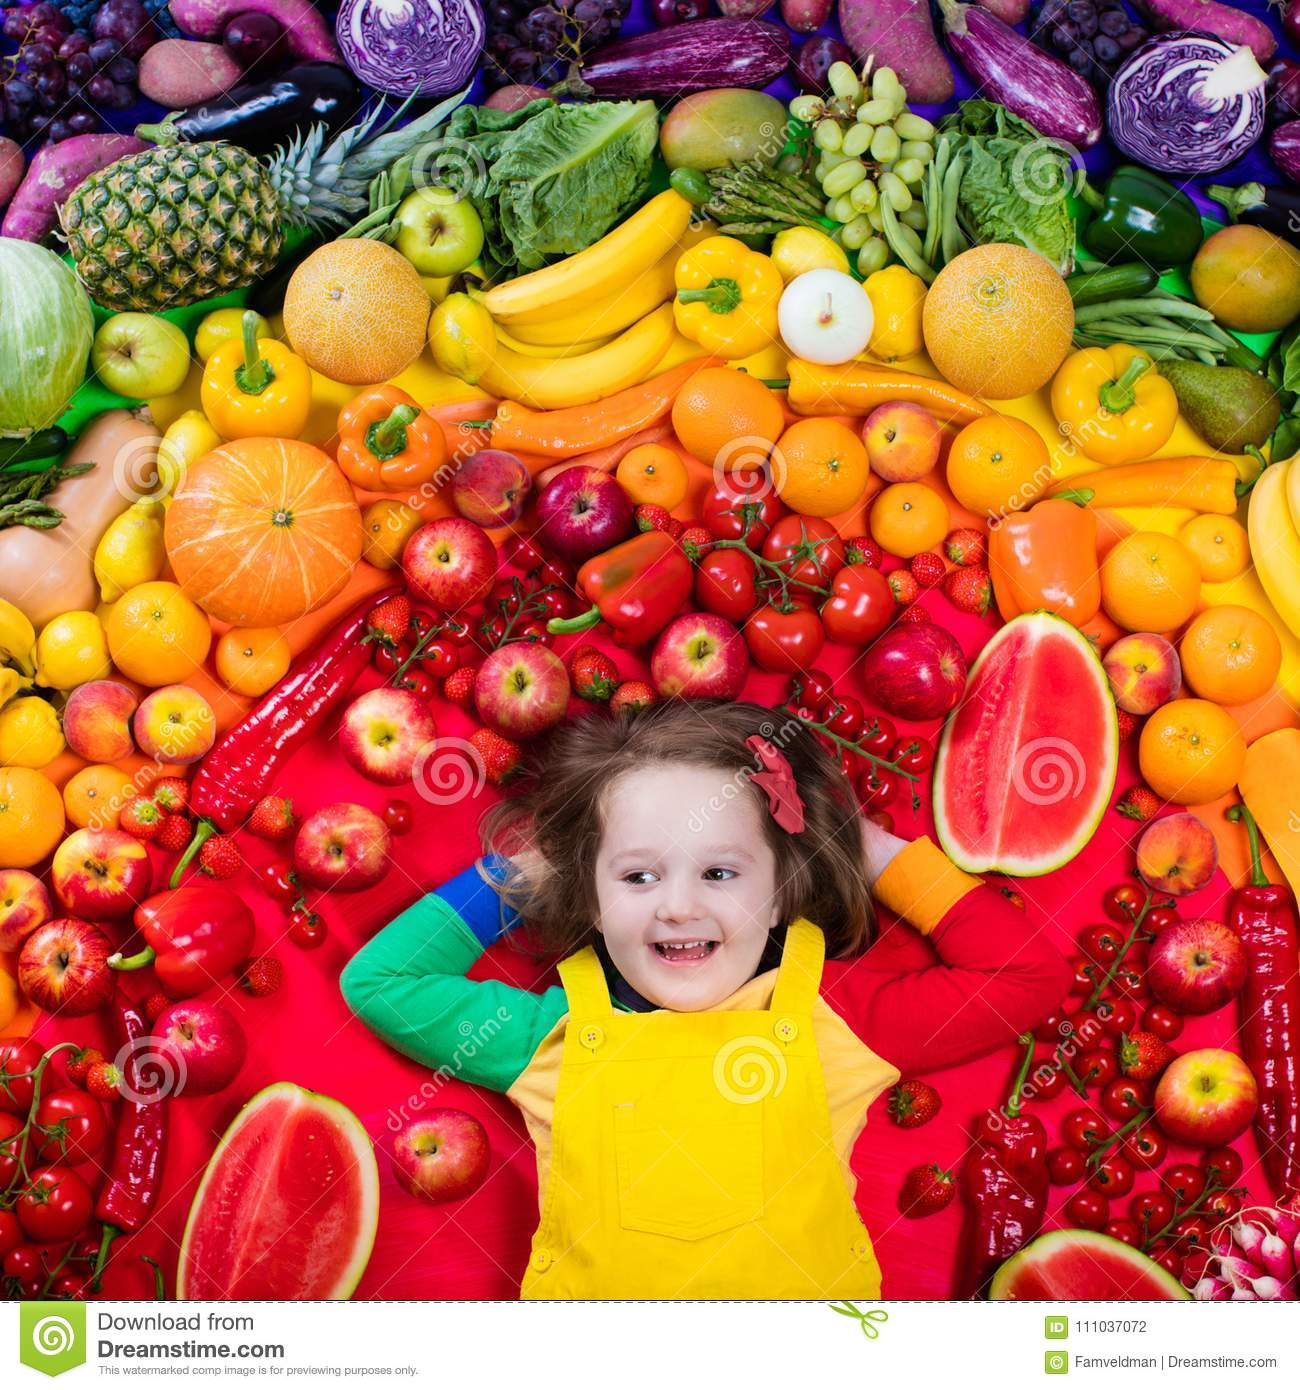 Rainbow Coordinated Fruits: Healthy Fruit And Vegetable Nutrition For Kids Stock Photo